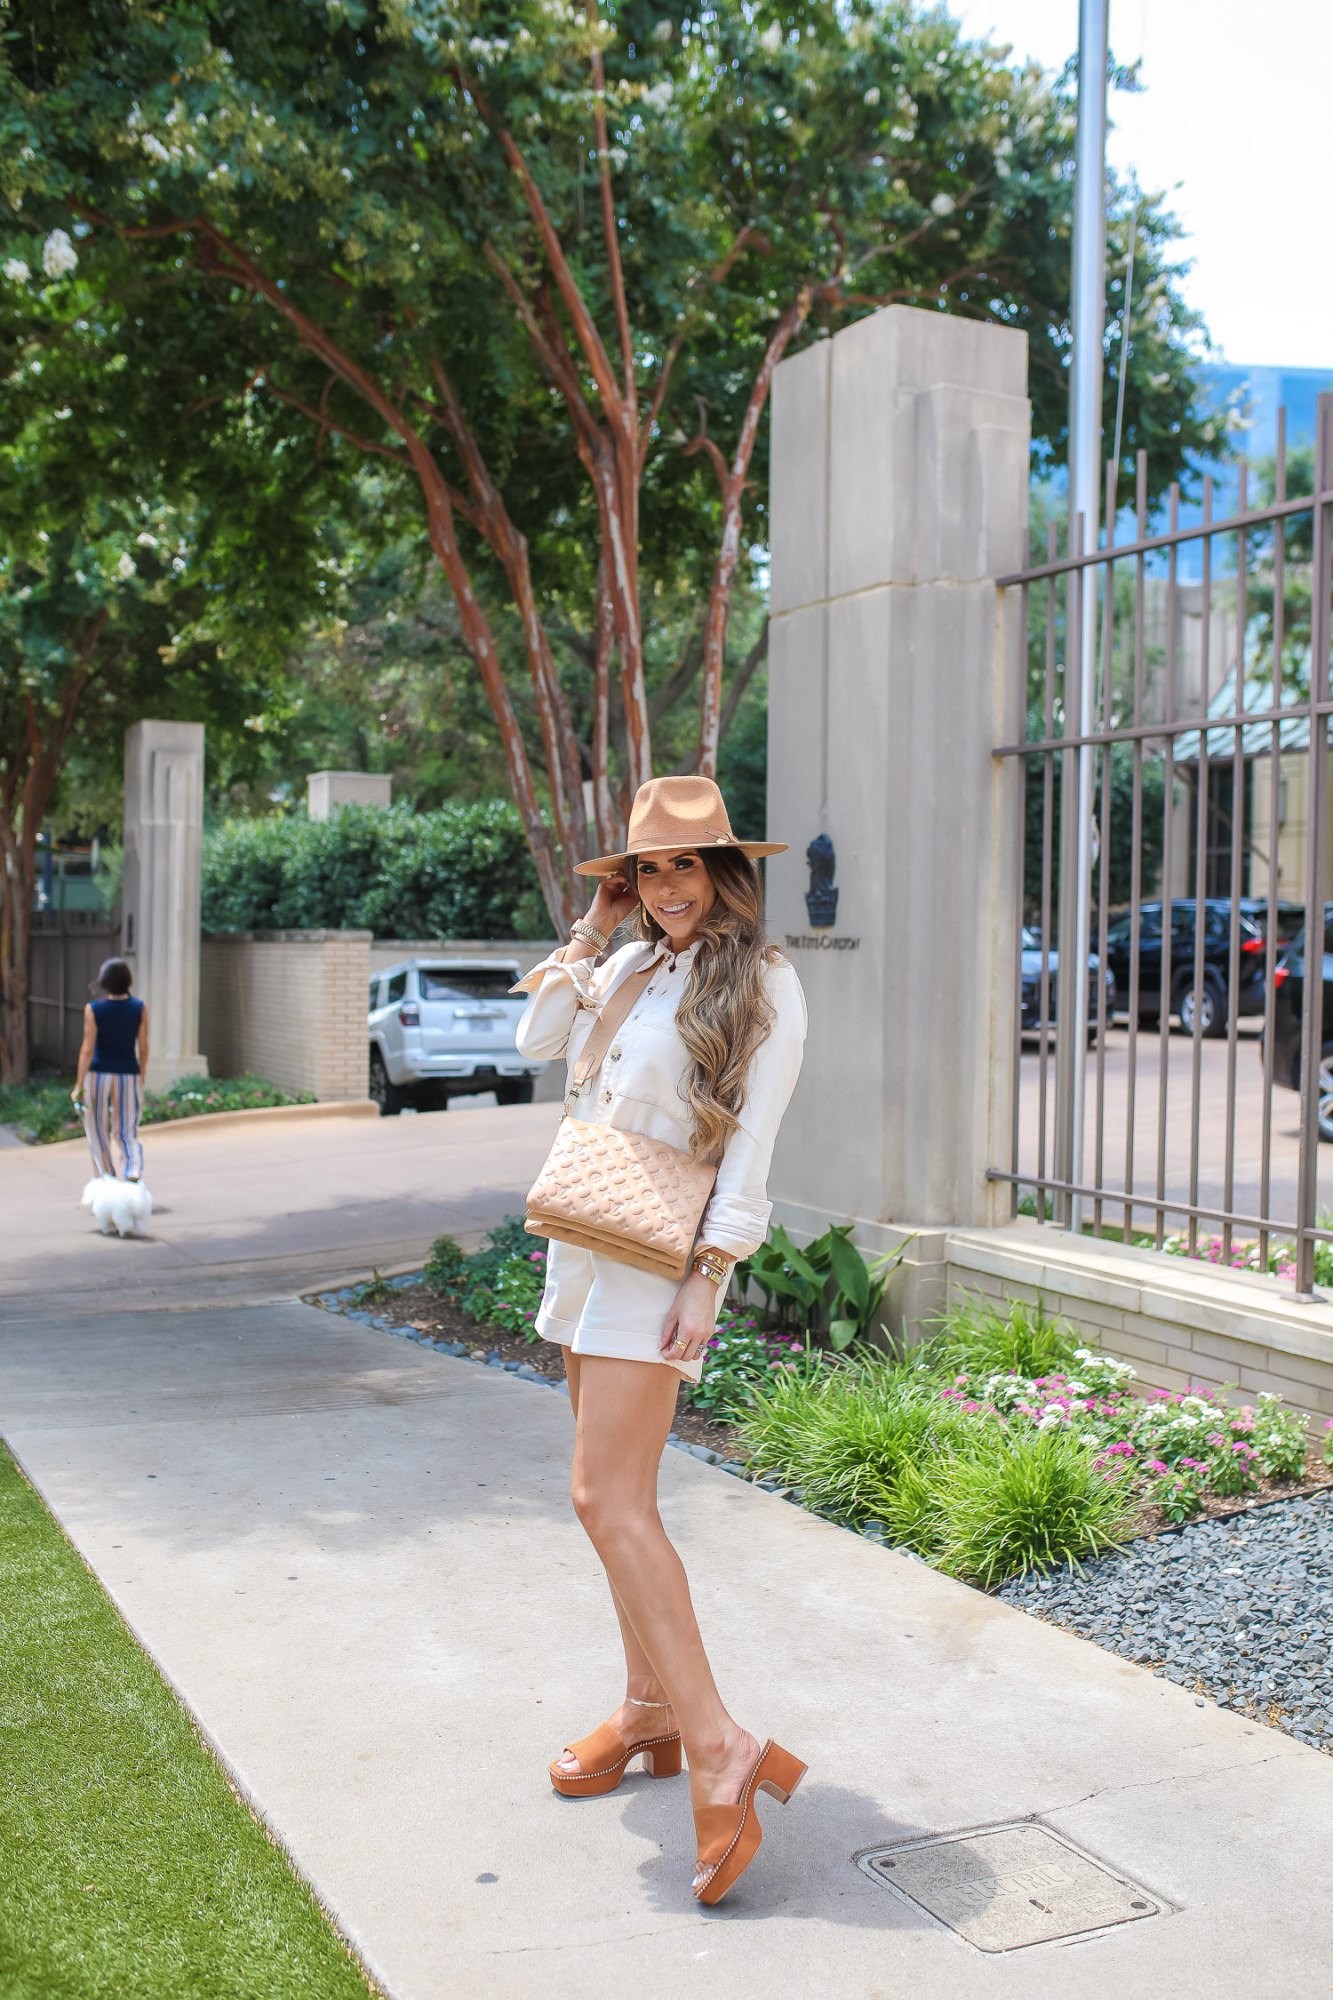 louis vuitton Coussin PM tan 2021, giani bini shoes dillards, emily gemma, ritz carlton dallas, fall outfit idea 2021 pinterest, dallas fashion blogger   Fall Outfit by popular US fashion blog, The Sweetest Thing: image of Emily Gemma waring a Gianni Bini romper, Gianni Bini brown suede mules, tan felt rancher hat, silver anklet, tan Louis Vuitton crossbody bag, and large hoop earrings while standing outside on a sidewalk.